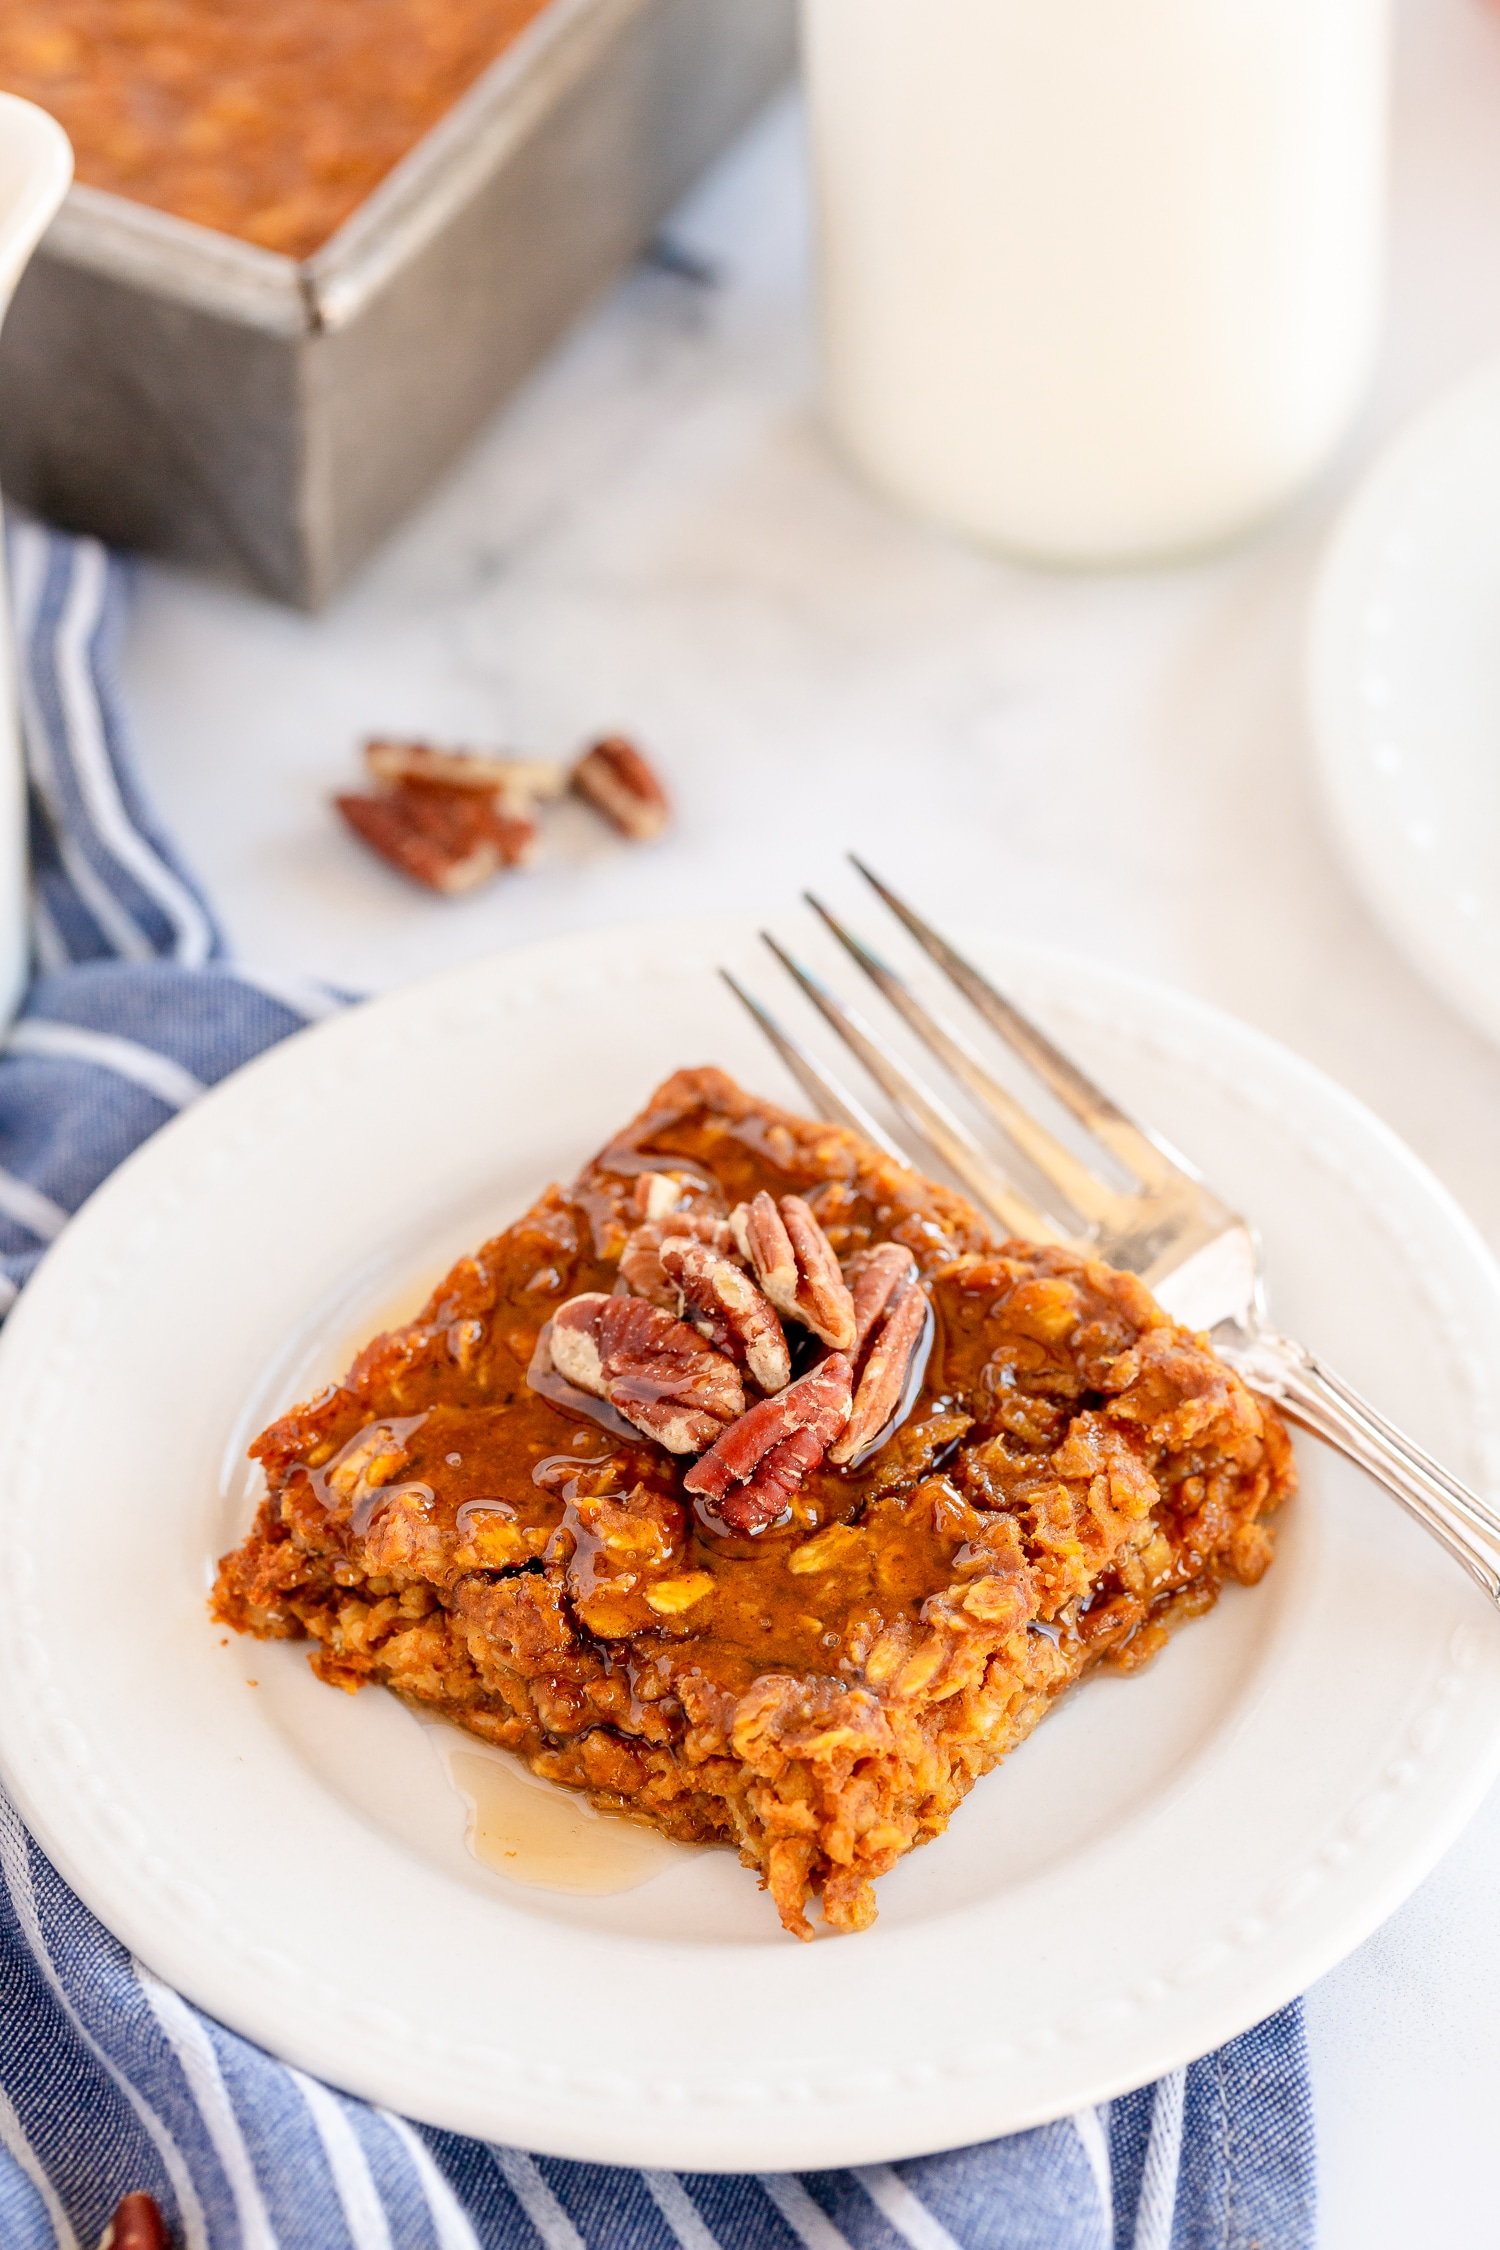 Pumpkin pie Oatmeal square on plate with maple syrup